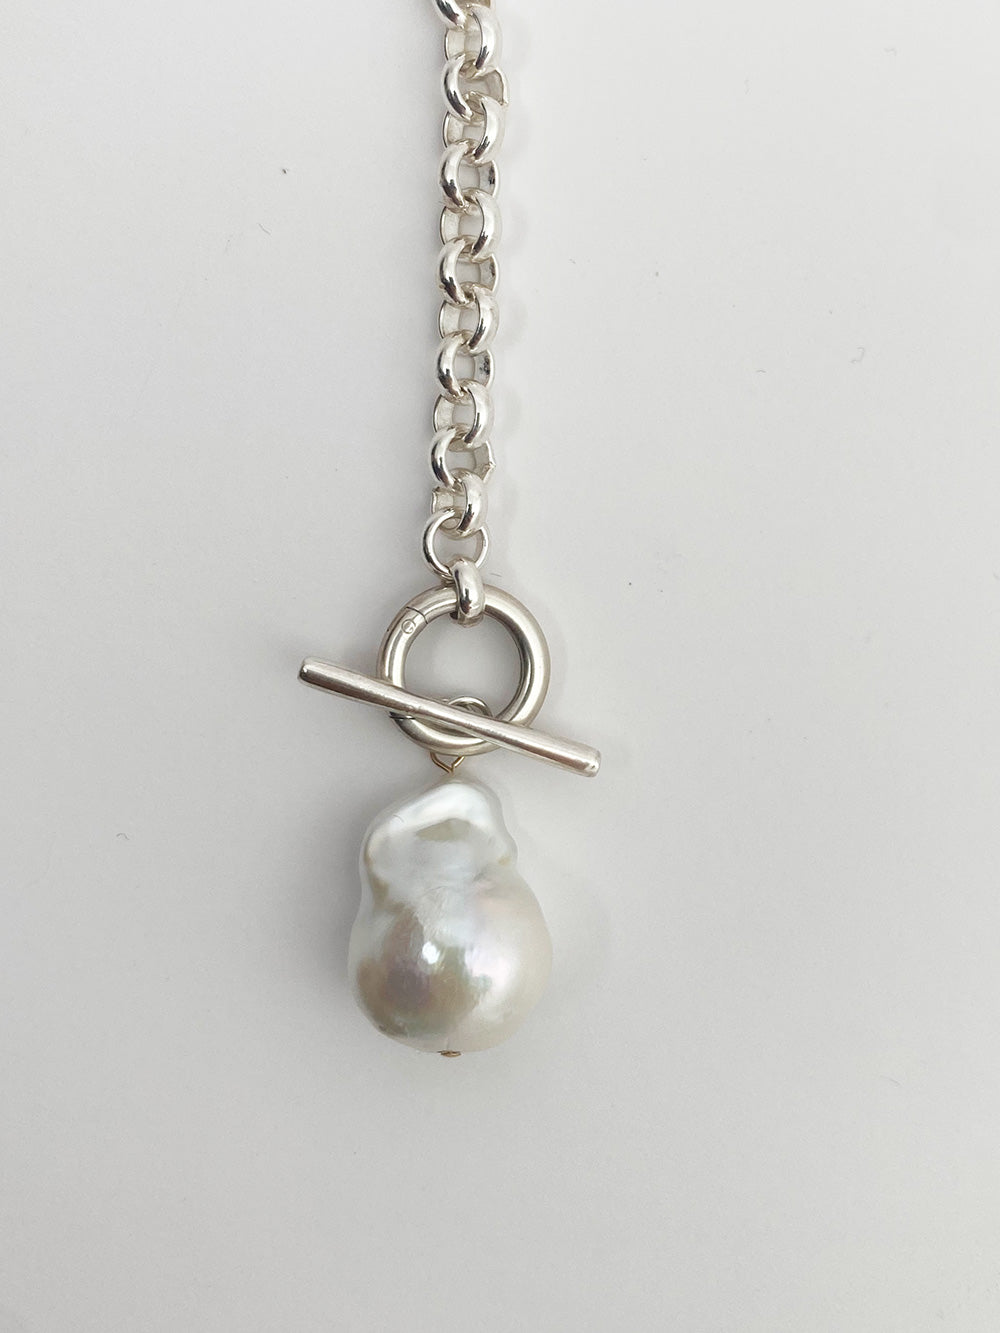 Baroque pearl removable pendant chain necklace